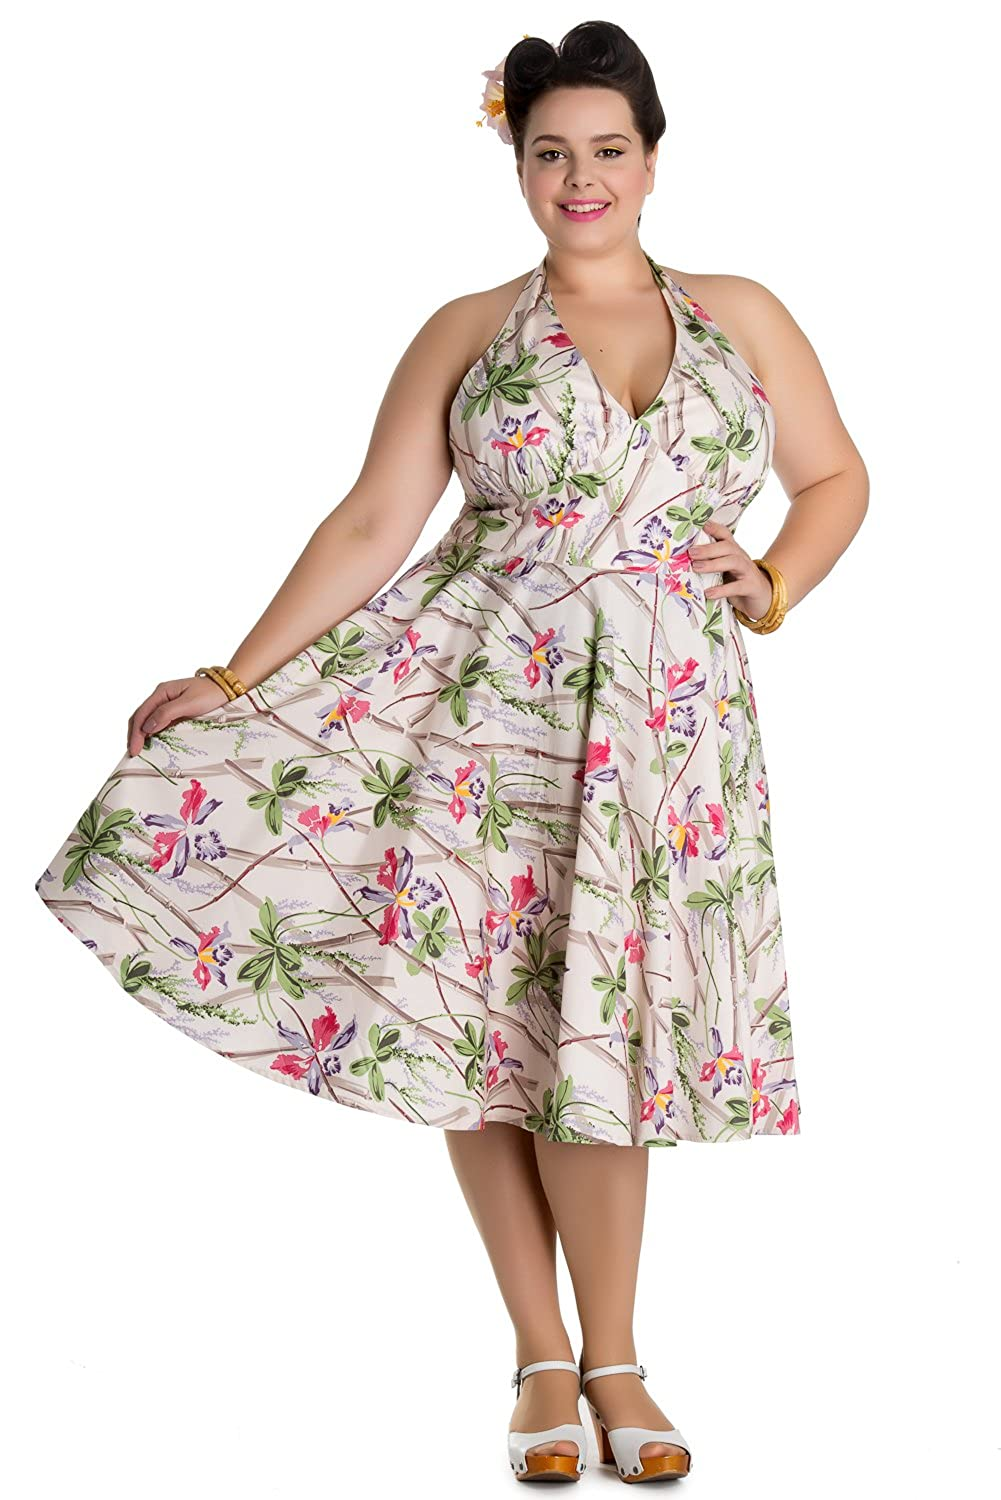 1950s Swing Dresses Hell Bunny Bamboo and Floral 50s Retro Tiki Dress $66.00 AT vintagedancer.com